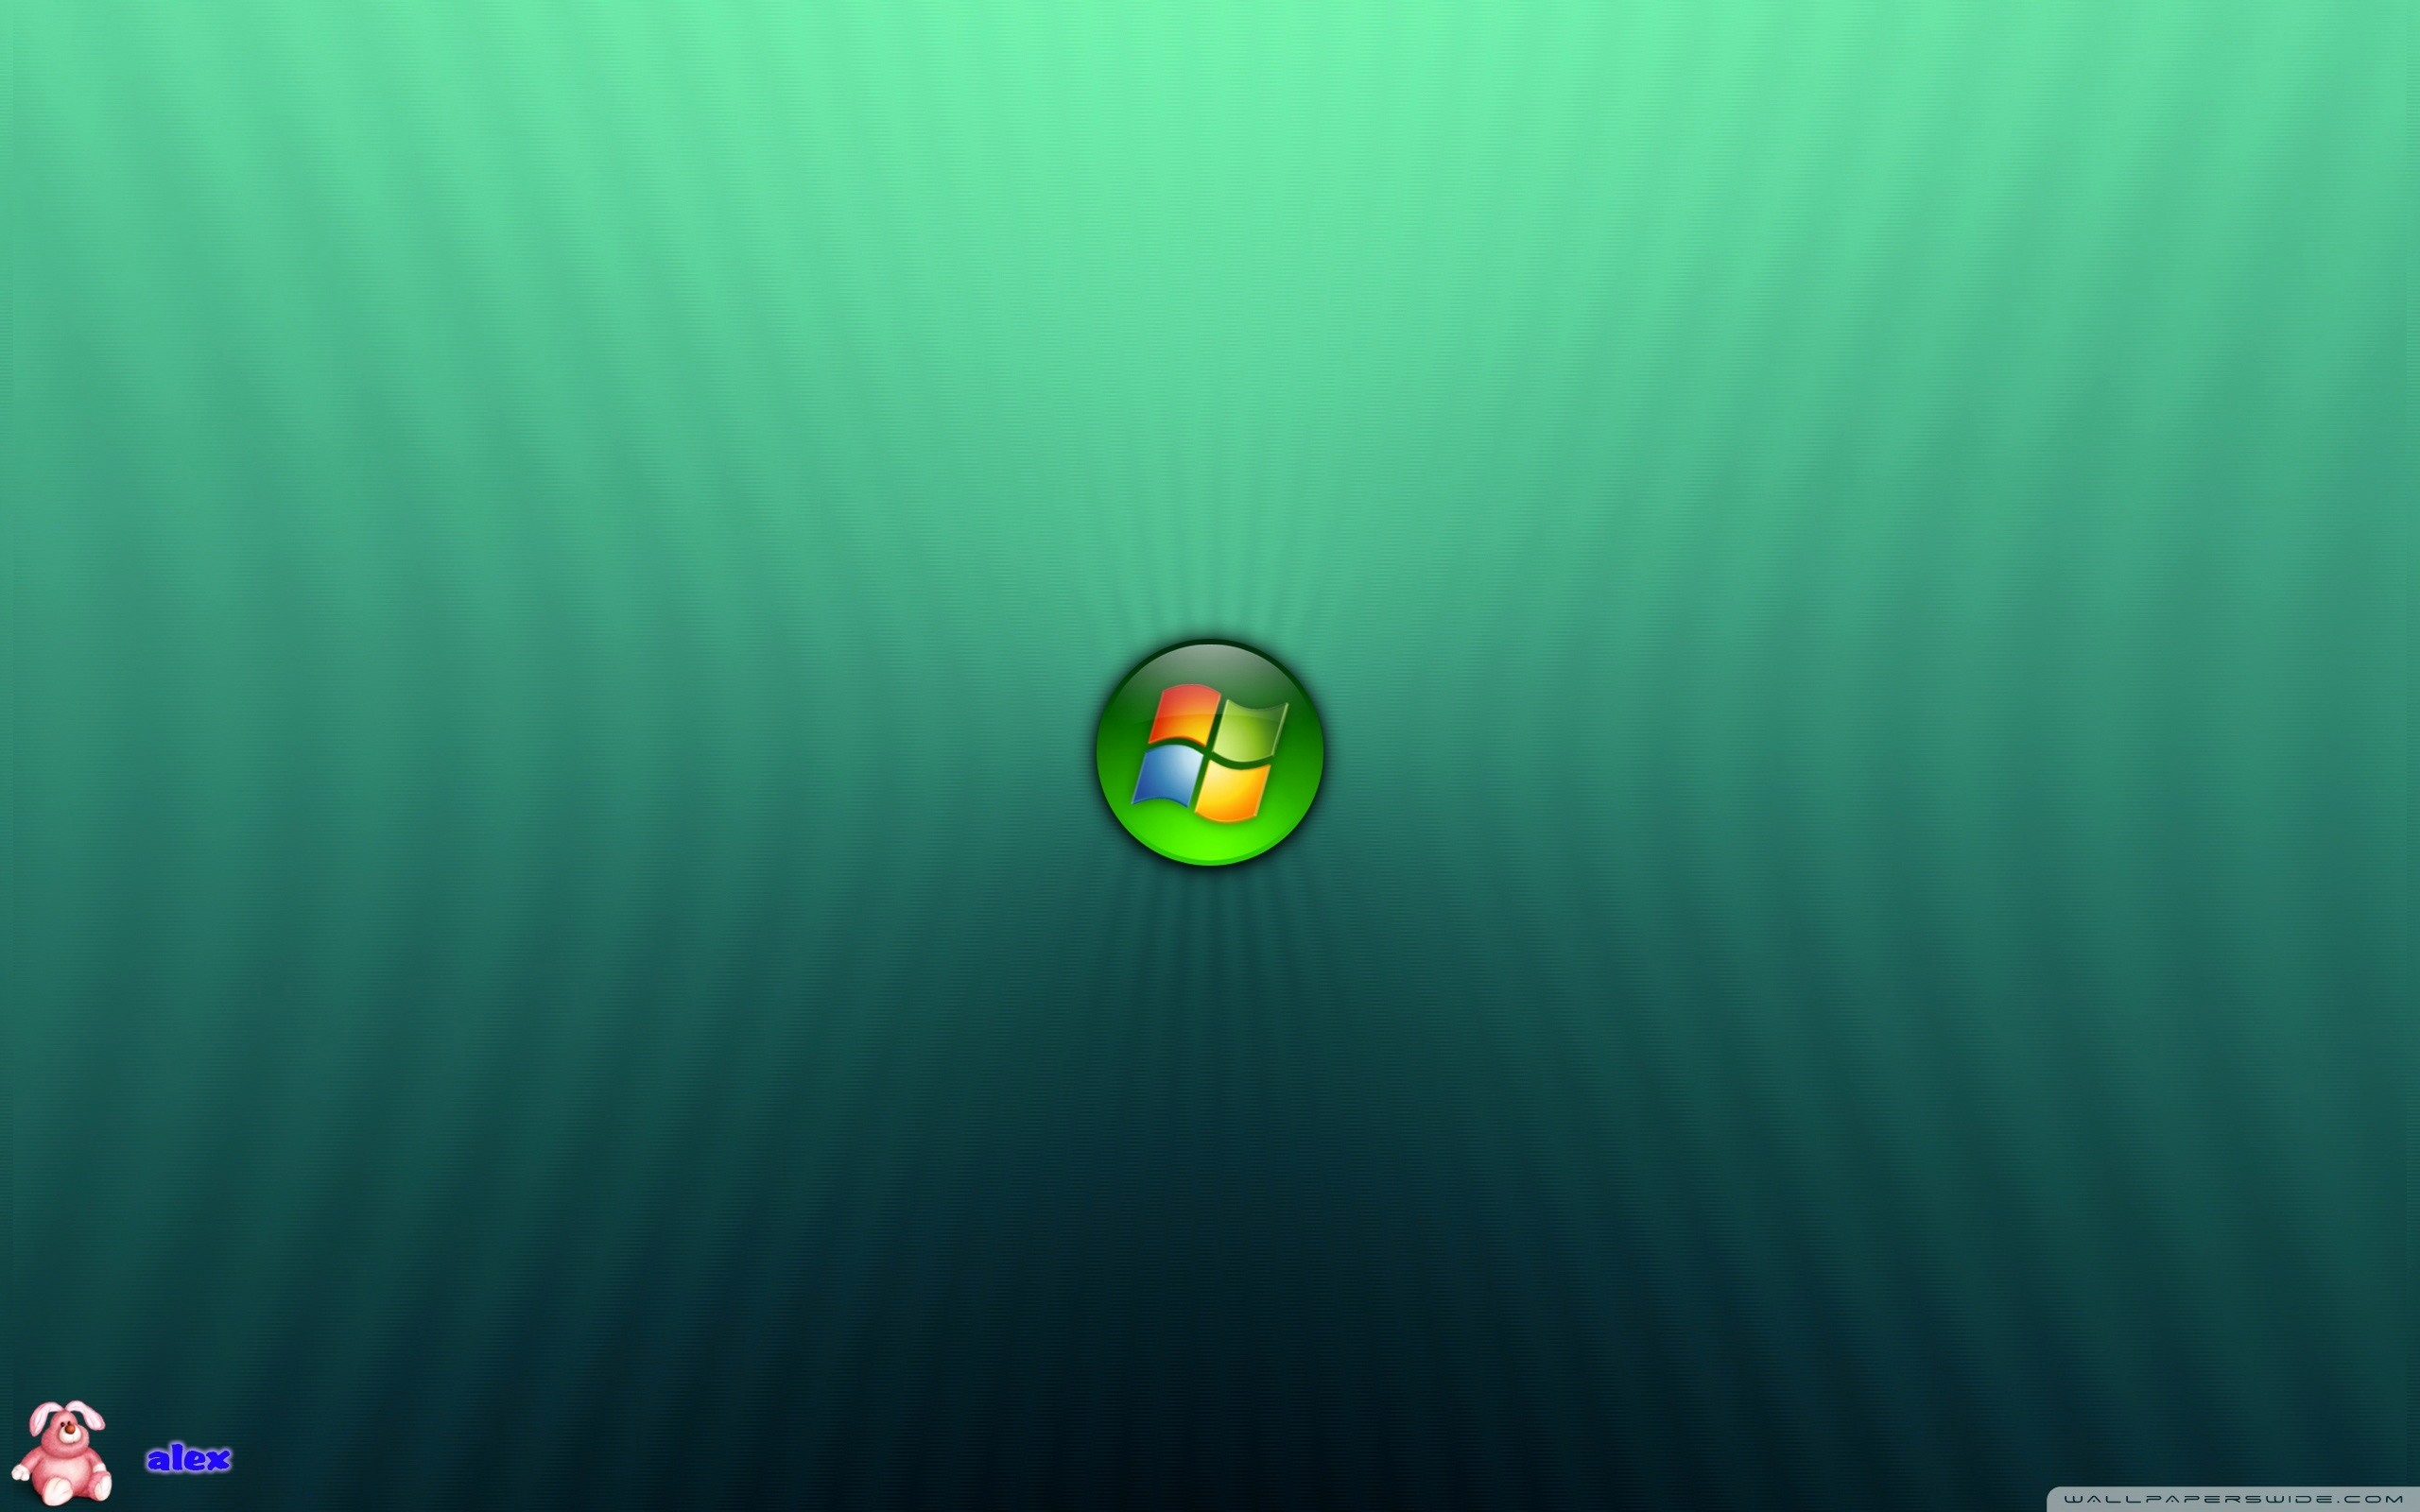 Res: 2560x1600, Minimalist Windows 10 Awesome Windows 8 Minimalist Dark Green â ¤ 4k Hd  Desktop Wallpaper for